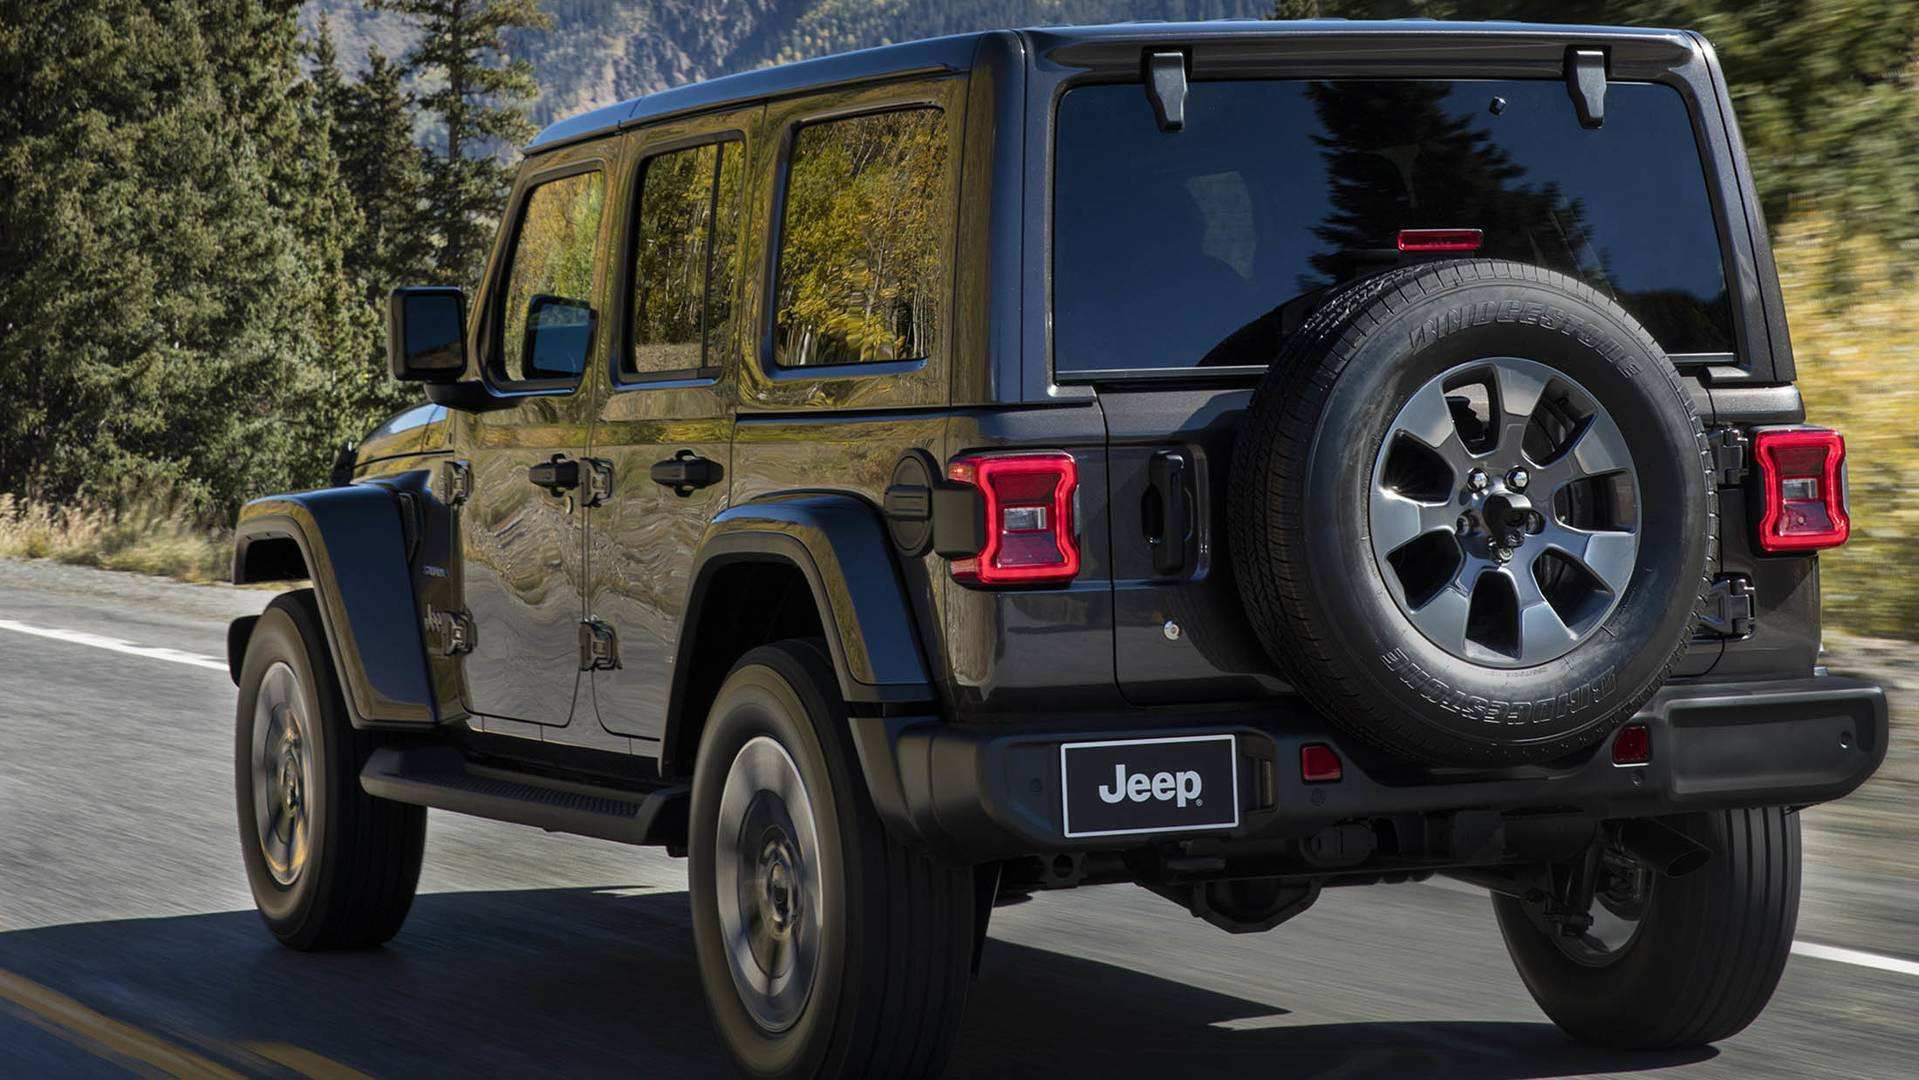 23 All New 2020 Jeep Wrangler Unlimited Ratings